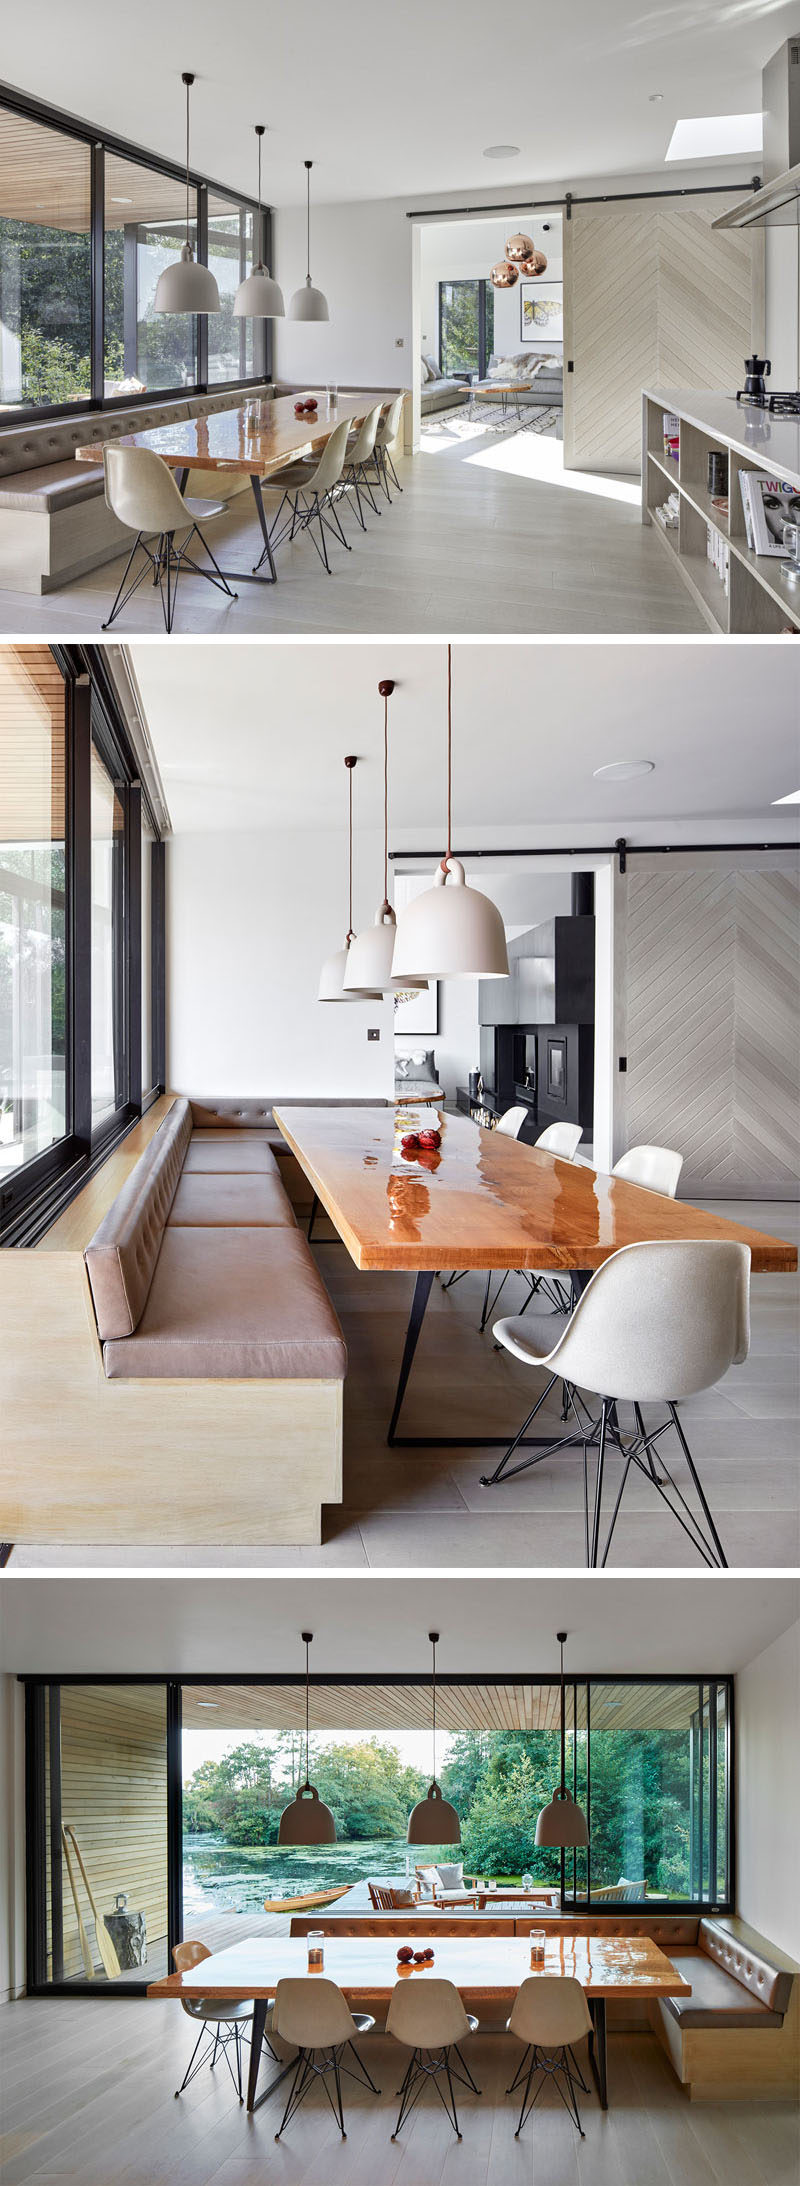 In this open kitchen and dining area, there's a large built-in banquette that wraps around the corner and provides the perfect position for the wood dining table.